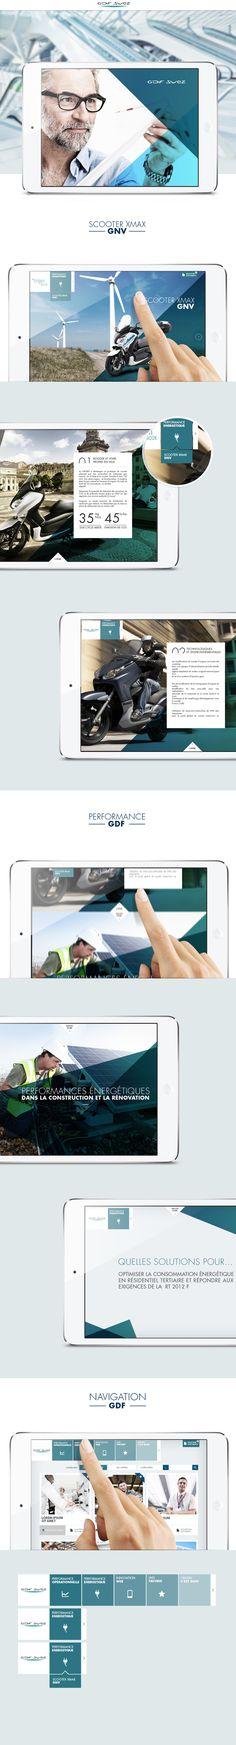 GDF Ipad by Sylvain Weiss, via Behance